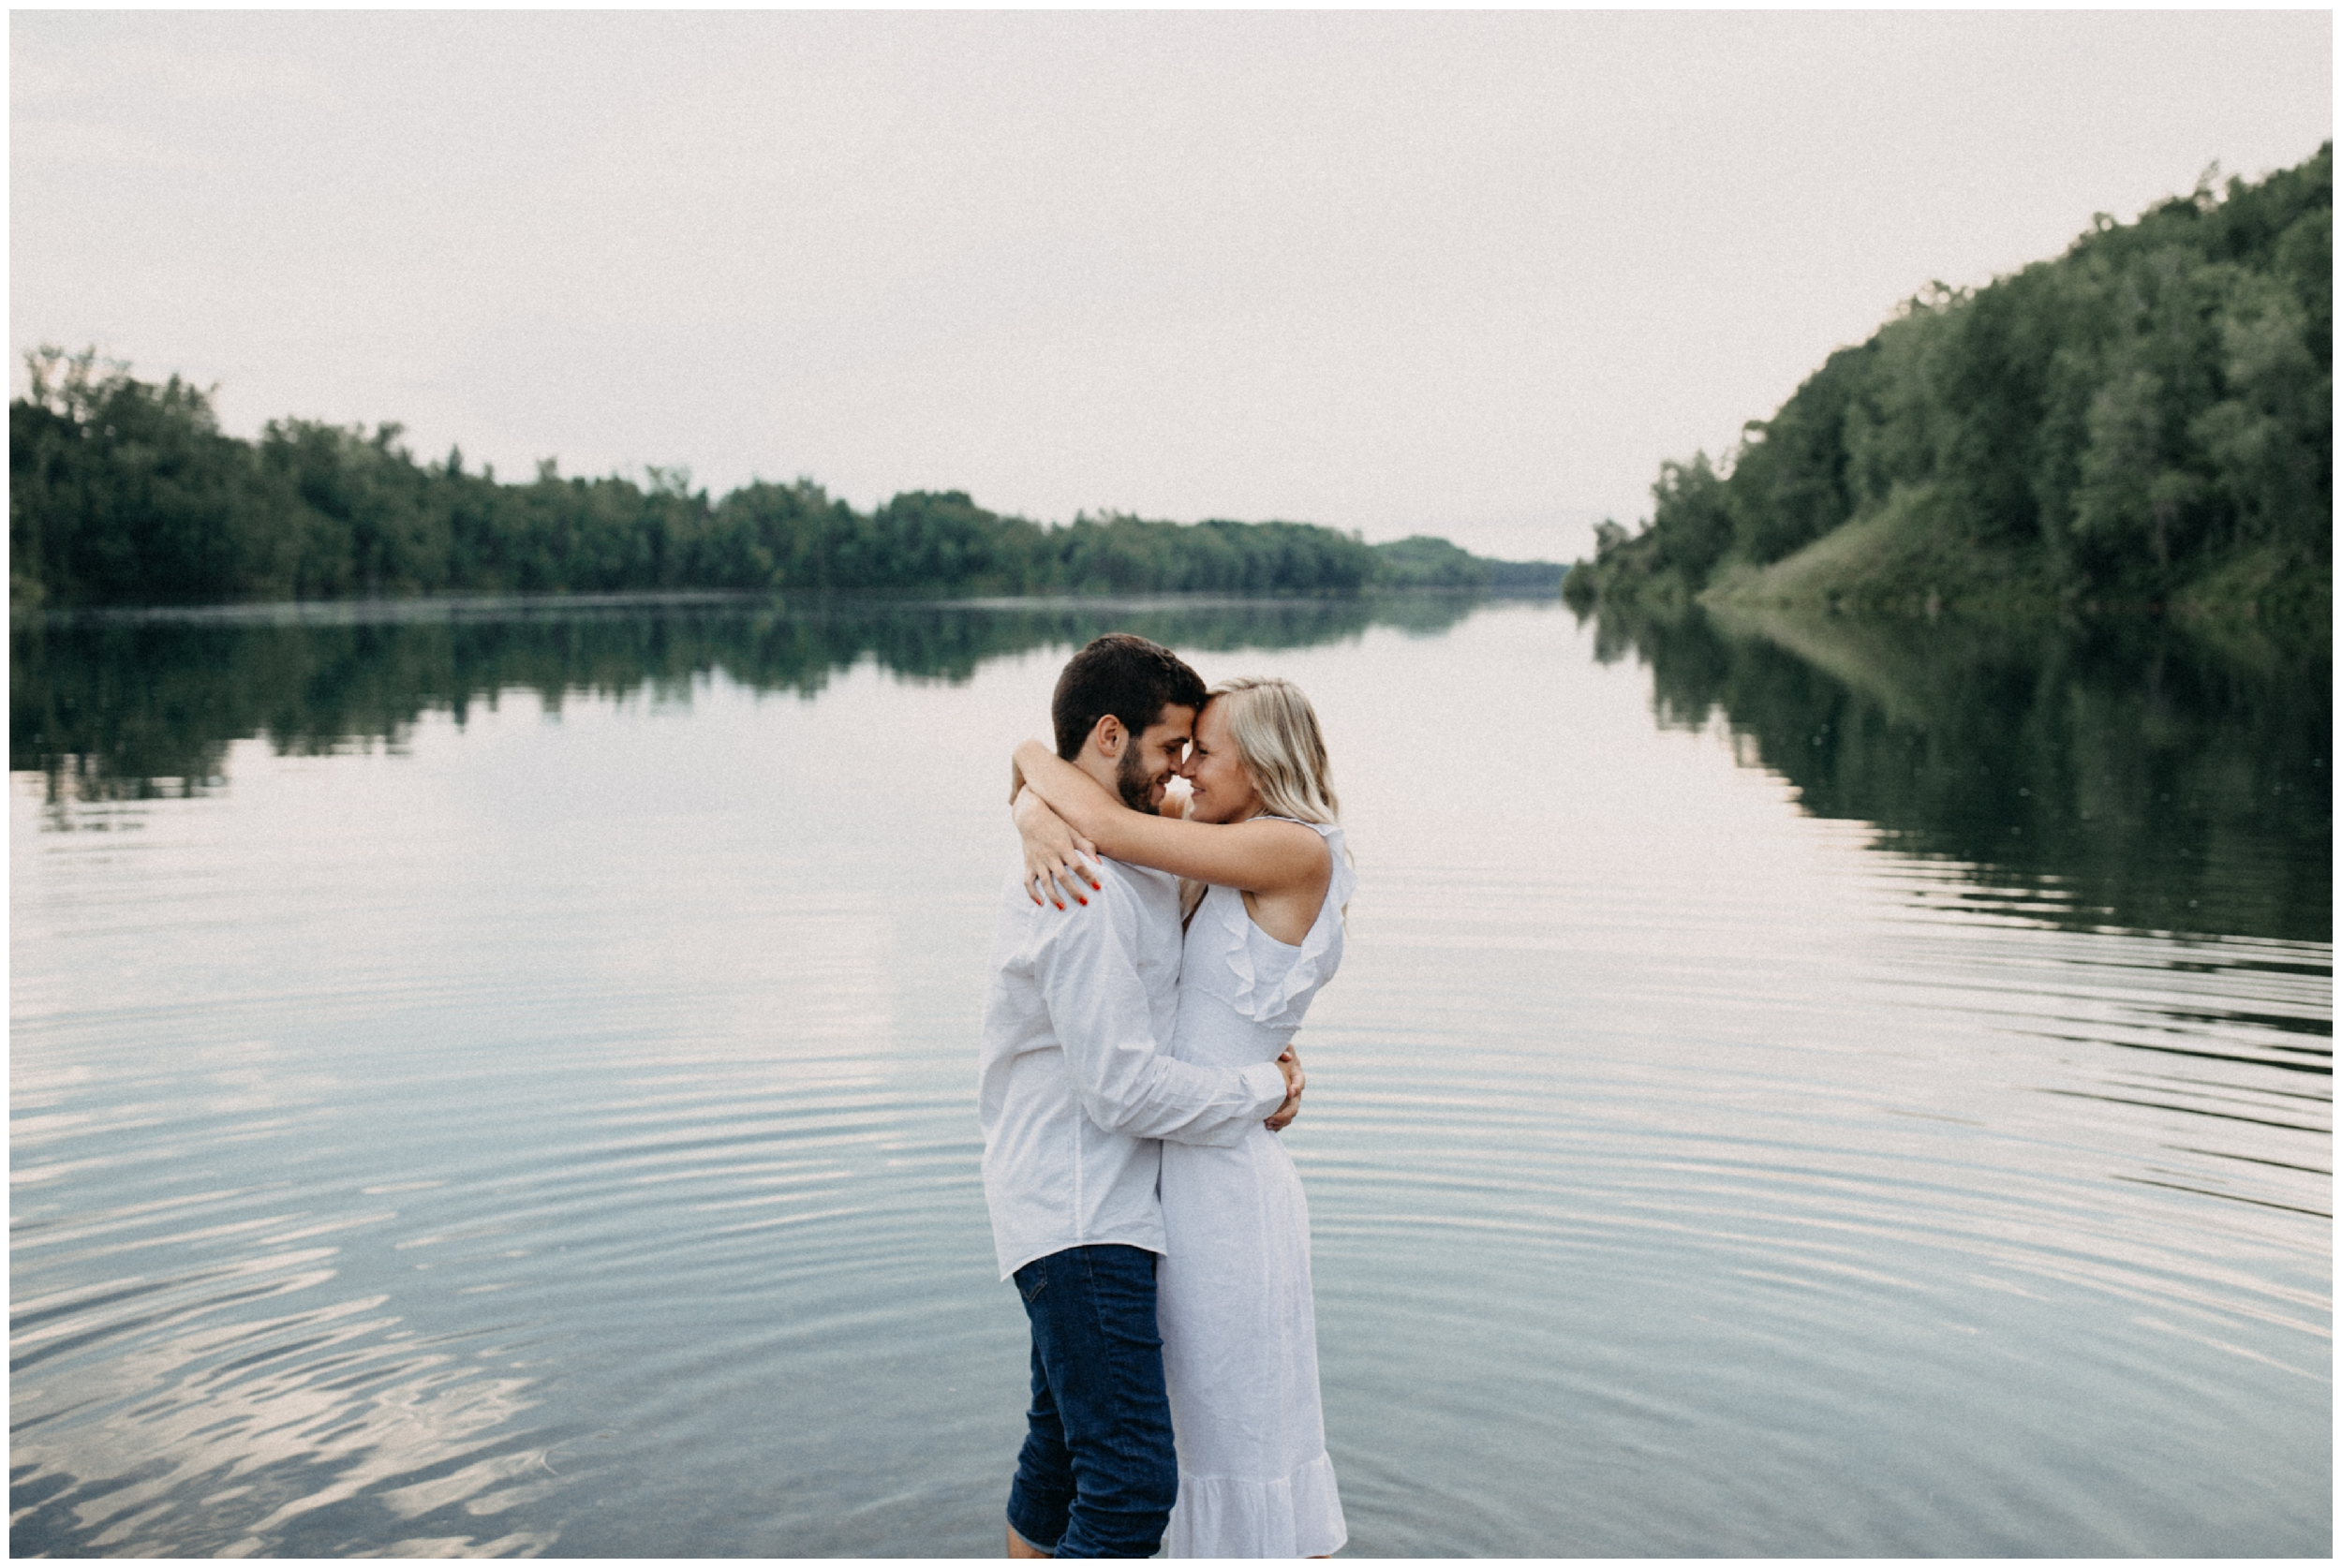 A beautiful engagement session photographed by Brainerd Minnesota wedding photographer Britt DeZeeuw